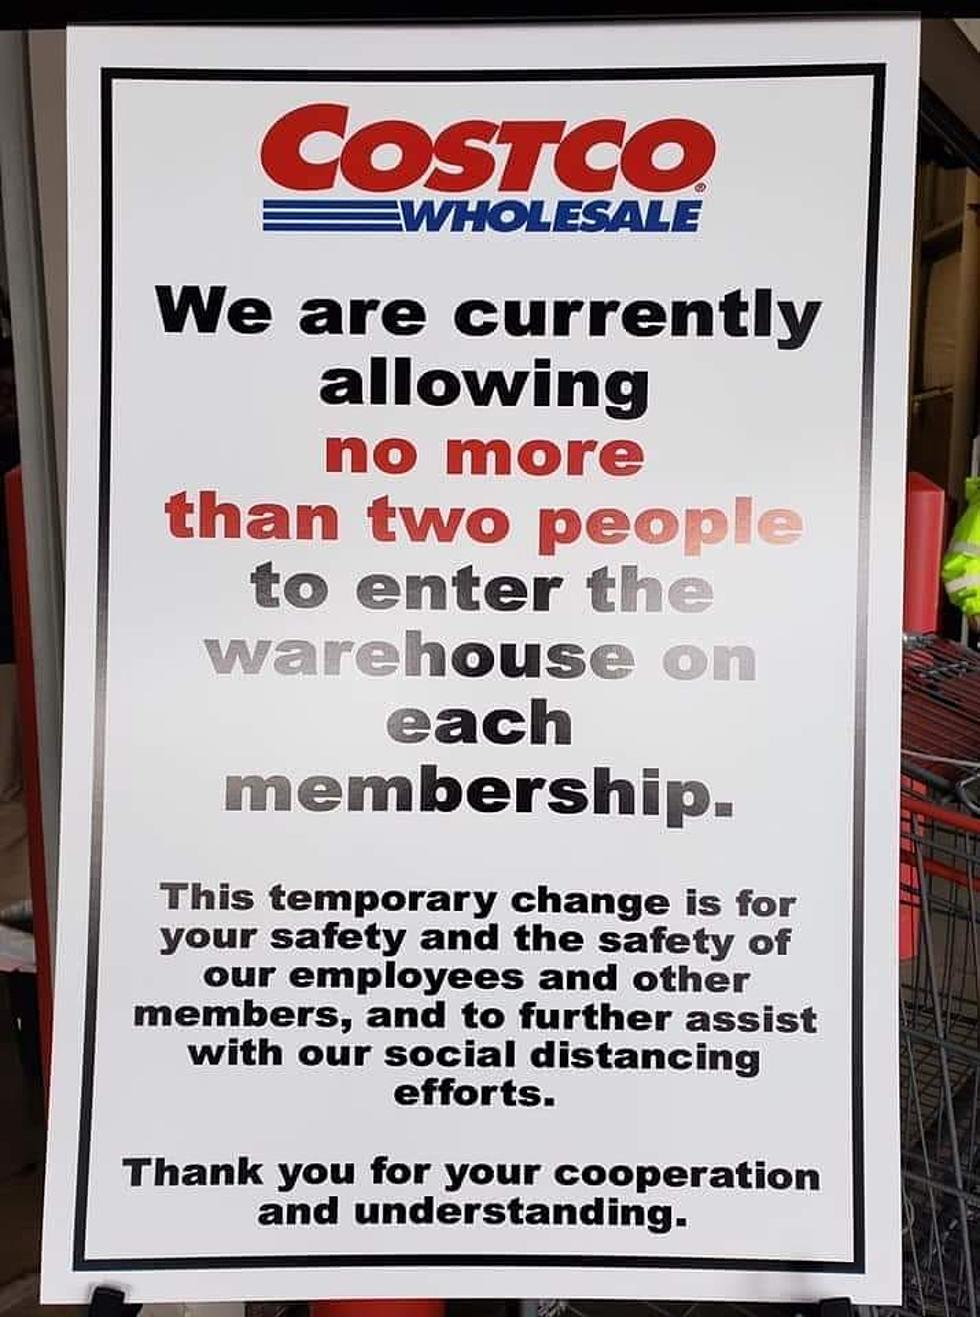 New Rules For Shopping at Costco & New Operating Hours